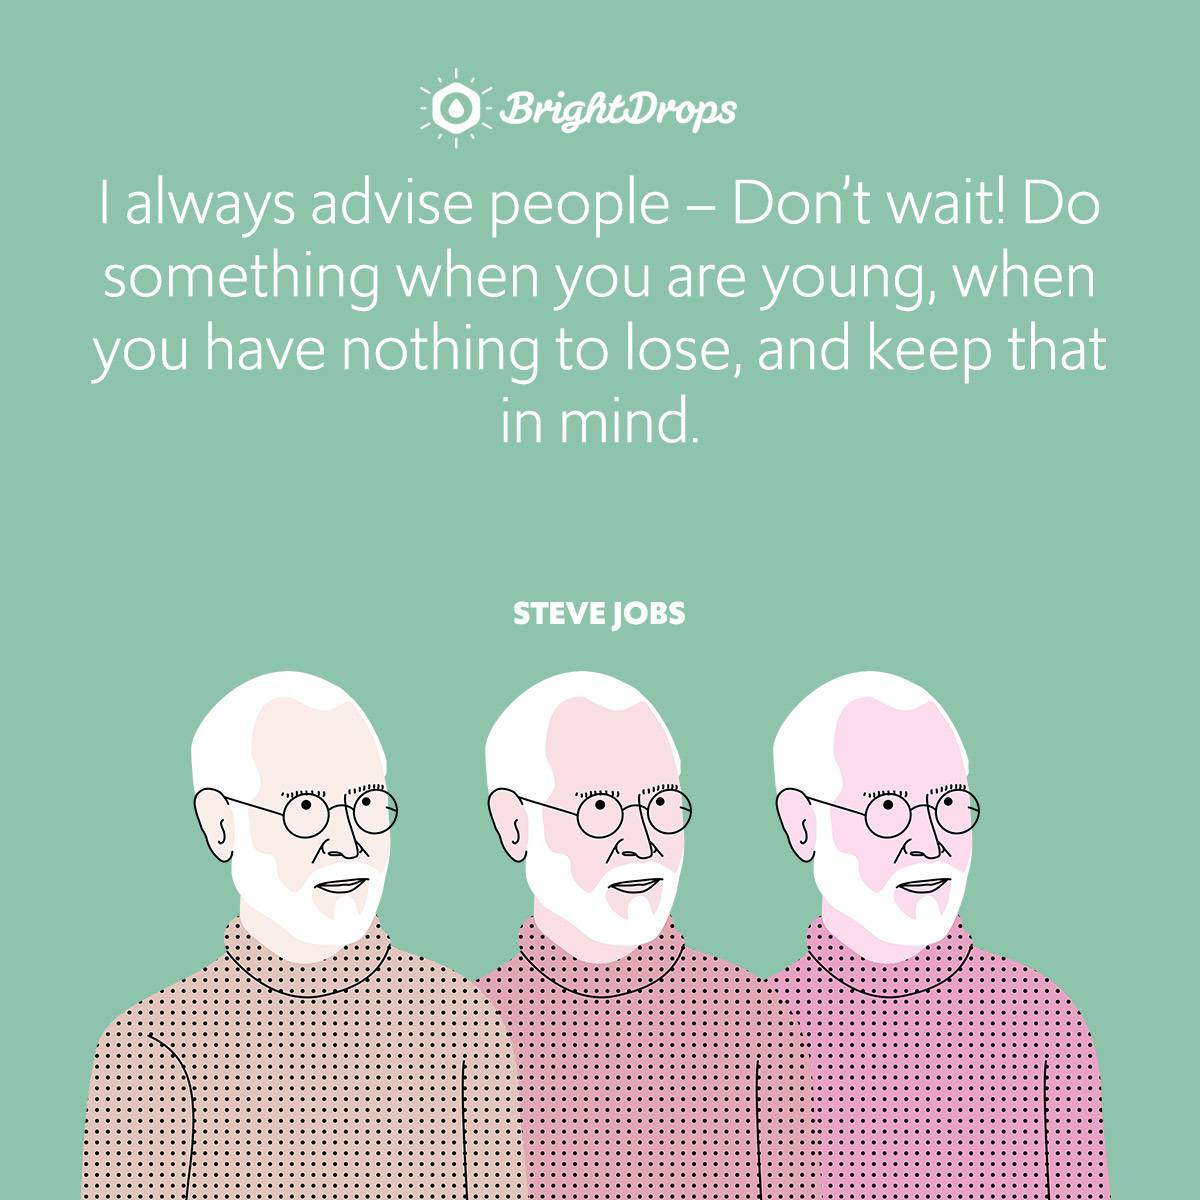 I always advise people – Don't wait! Do something when you are young, when you have nothing to lose, and keep that in mind.